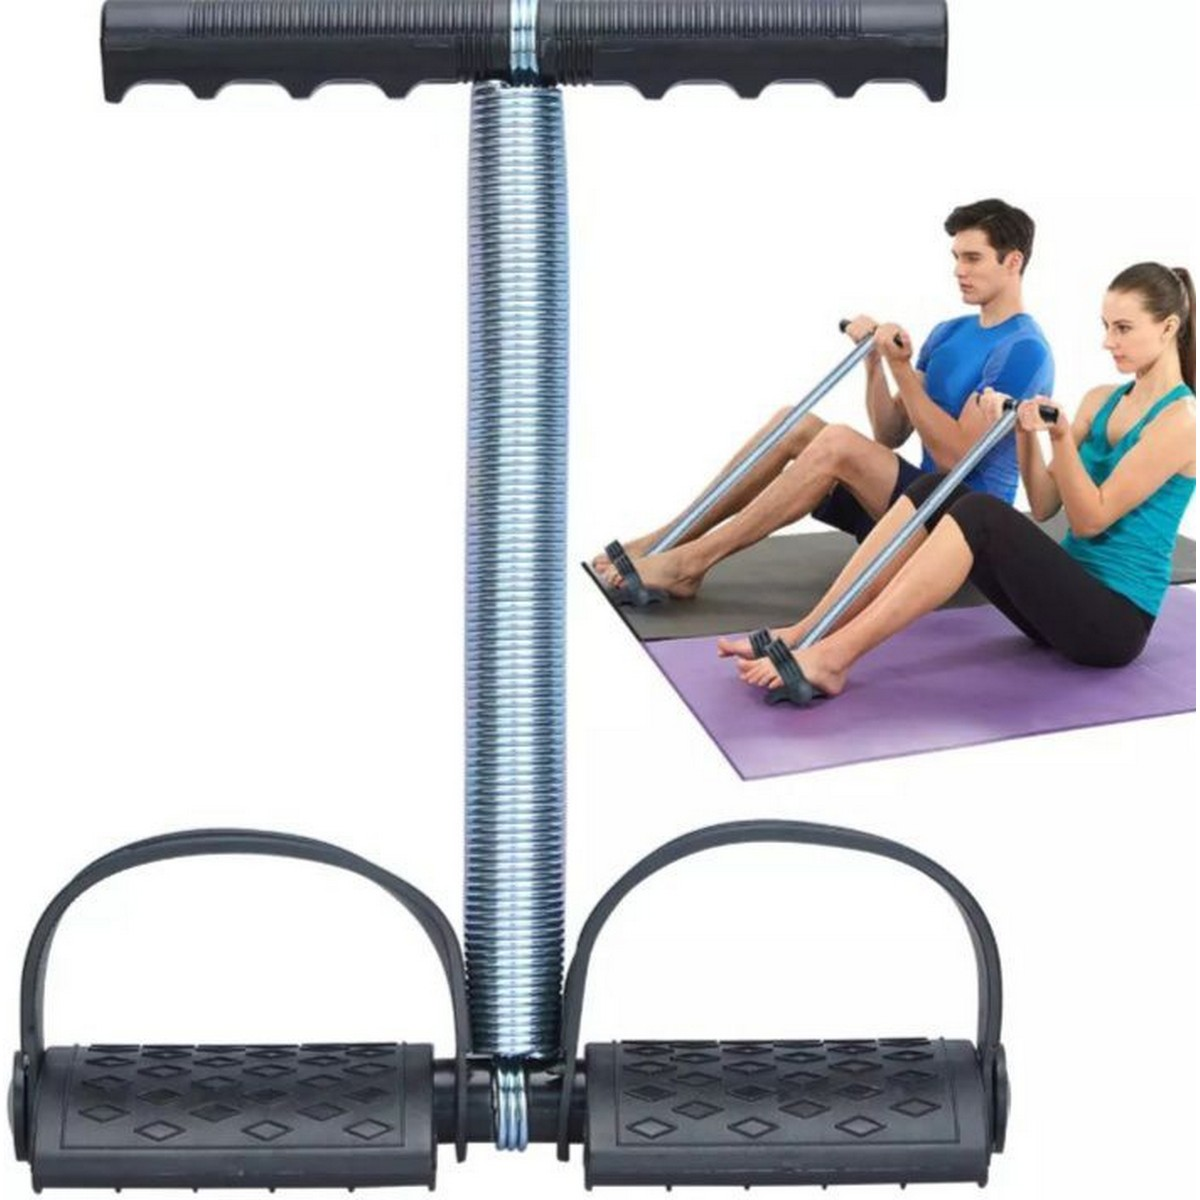 Tummy Trimmer High Quality Power Spring Belly Loosening Fitness Exercise Machine Weight loss machine Belly loosening machine